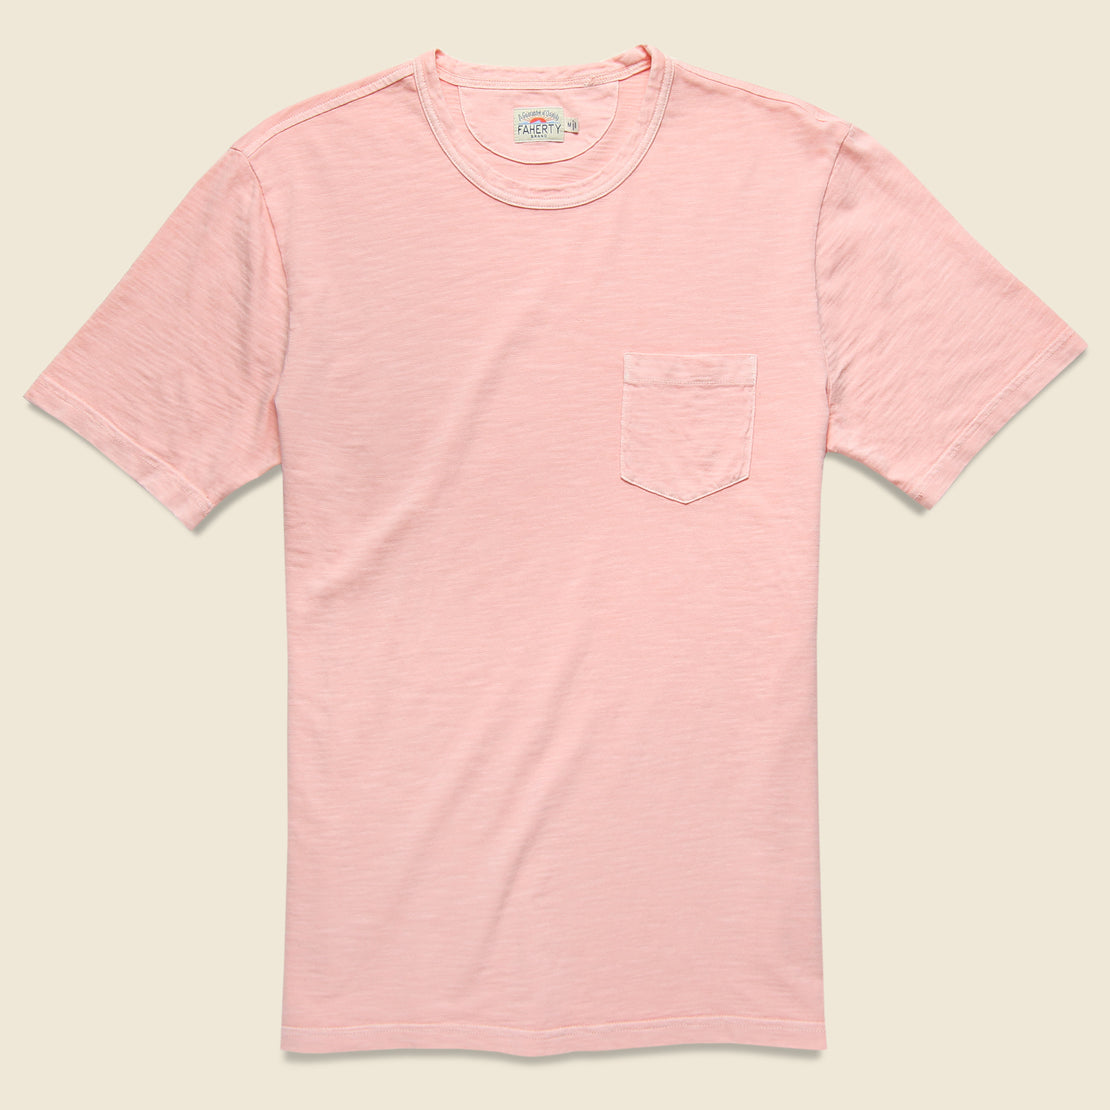 Faherty Garment Dye Pocket Tee - Summer Pink